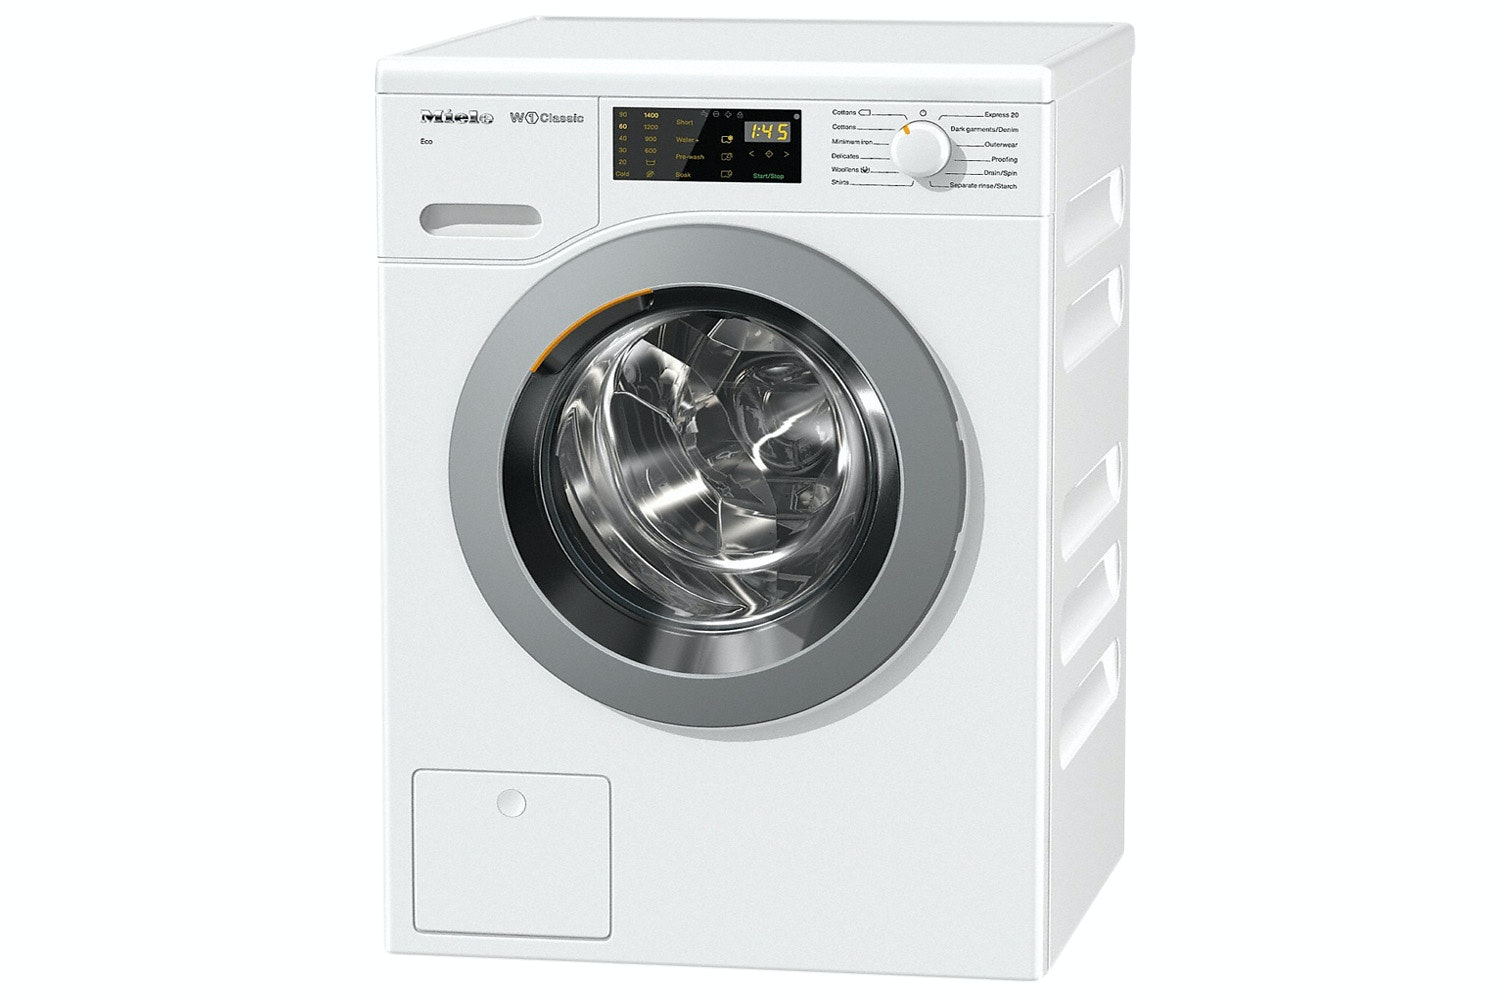 Miele 7kg Washing Machine | WDB020 W1 Classic